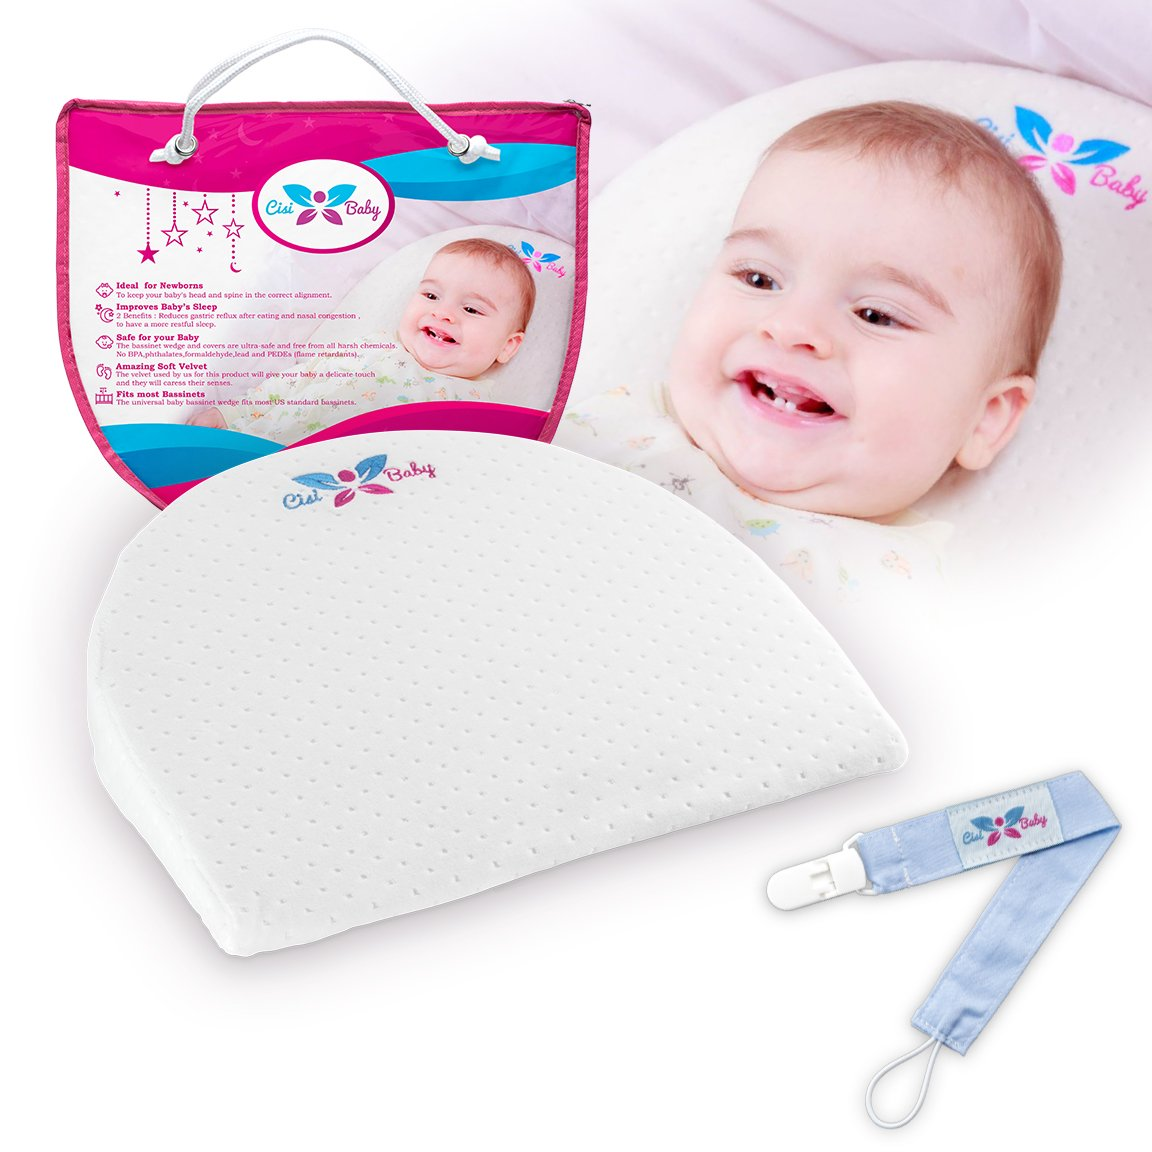 Universal Bassinet Wedge Pillow - Perfect As Baby Sleep Positioner For Infant Acid Reflux And Newborn Nasal Congestion Reducer - Improves Child' s Sleeping - by CisiBaby